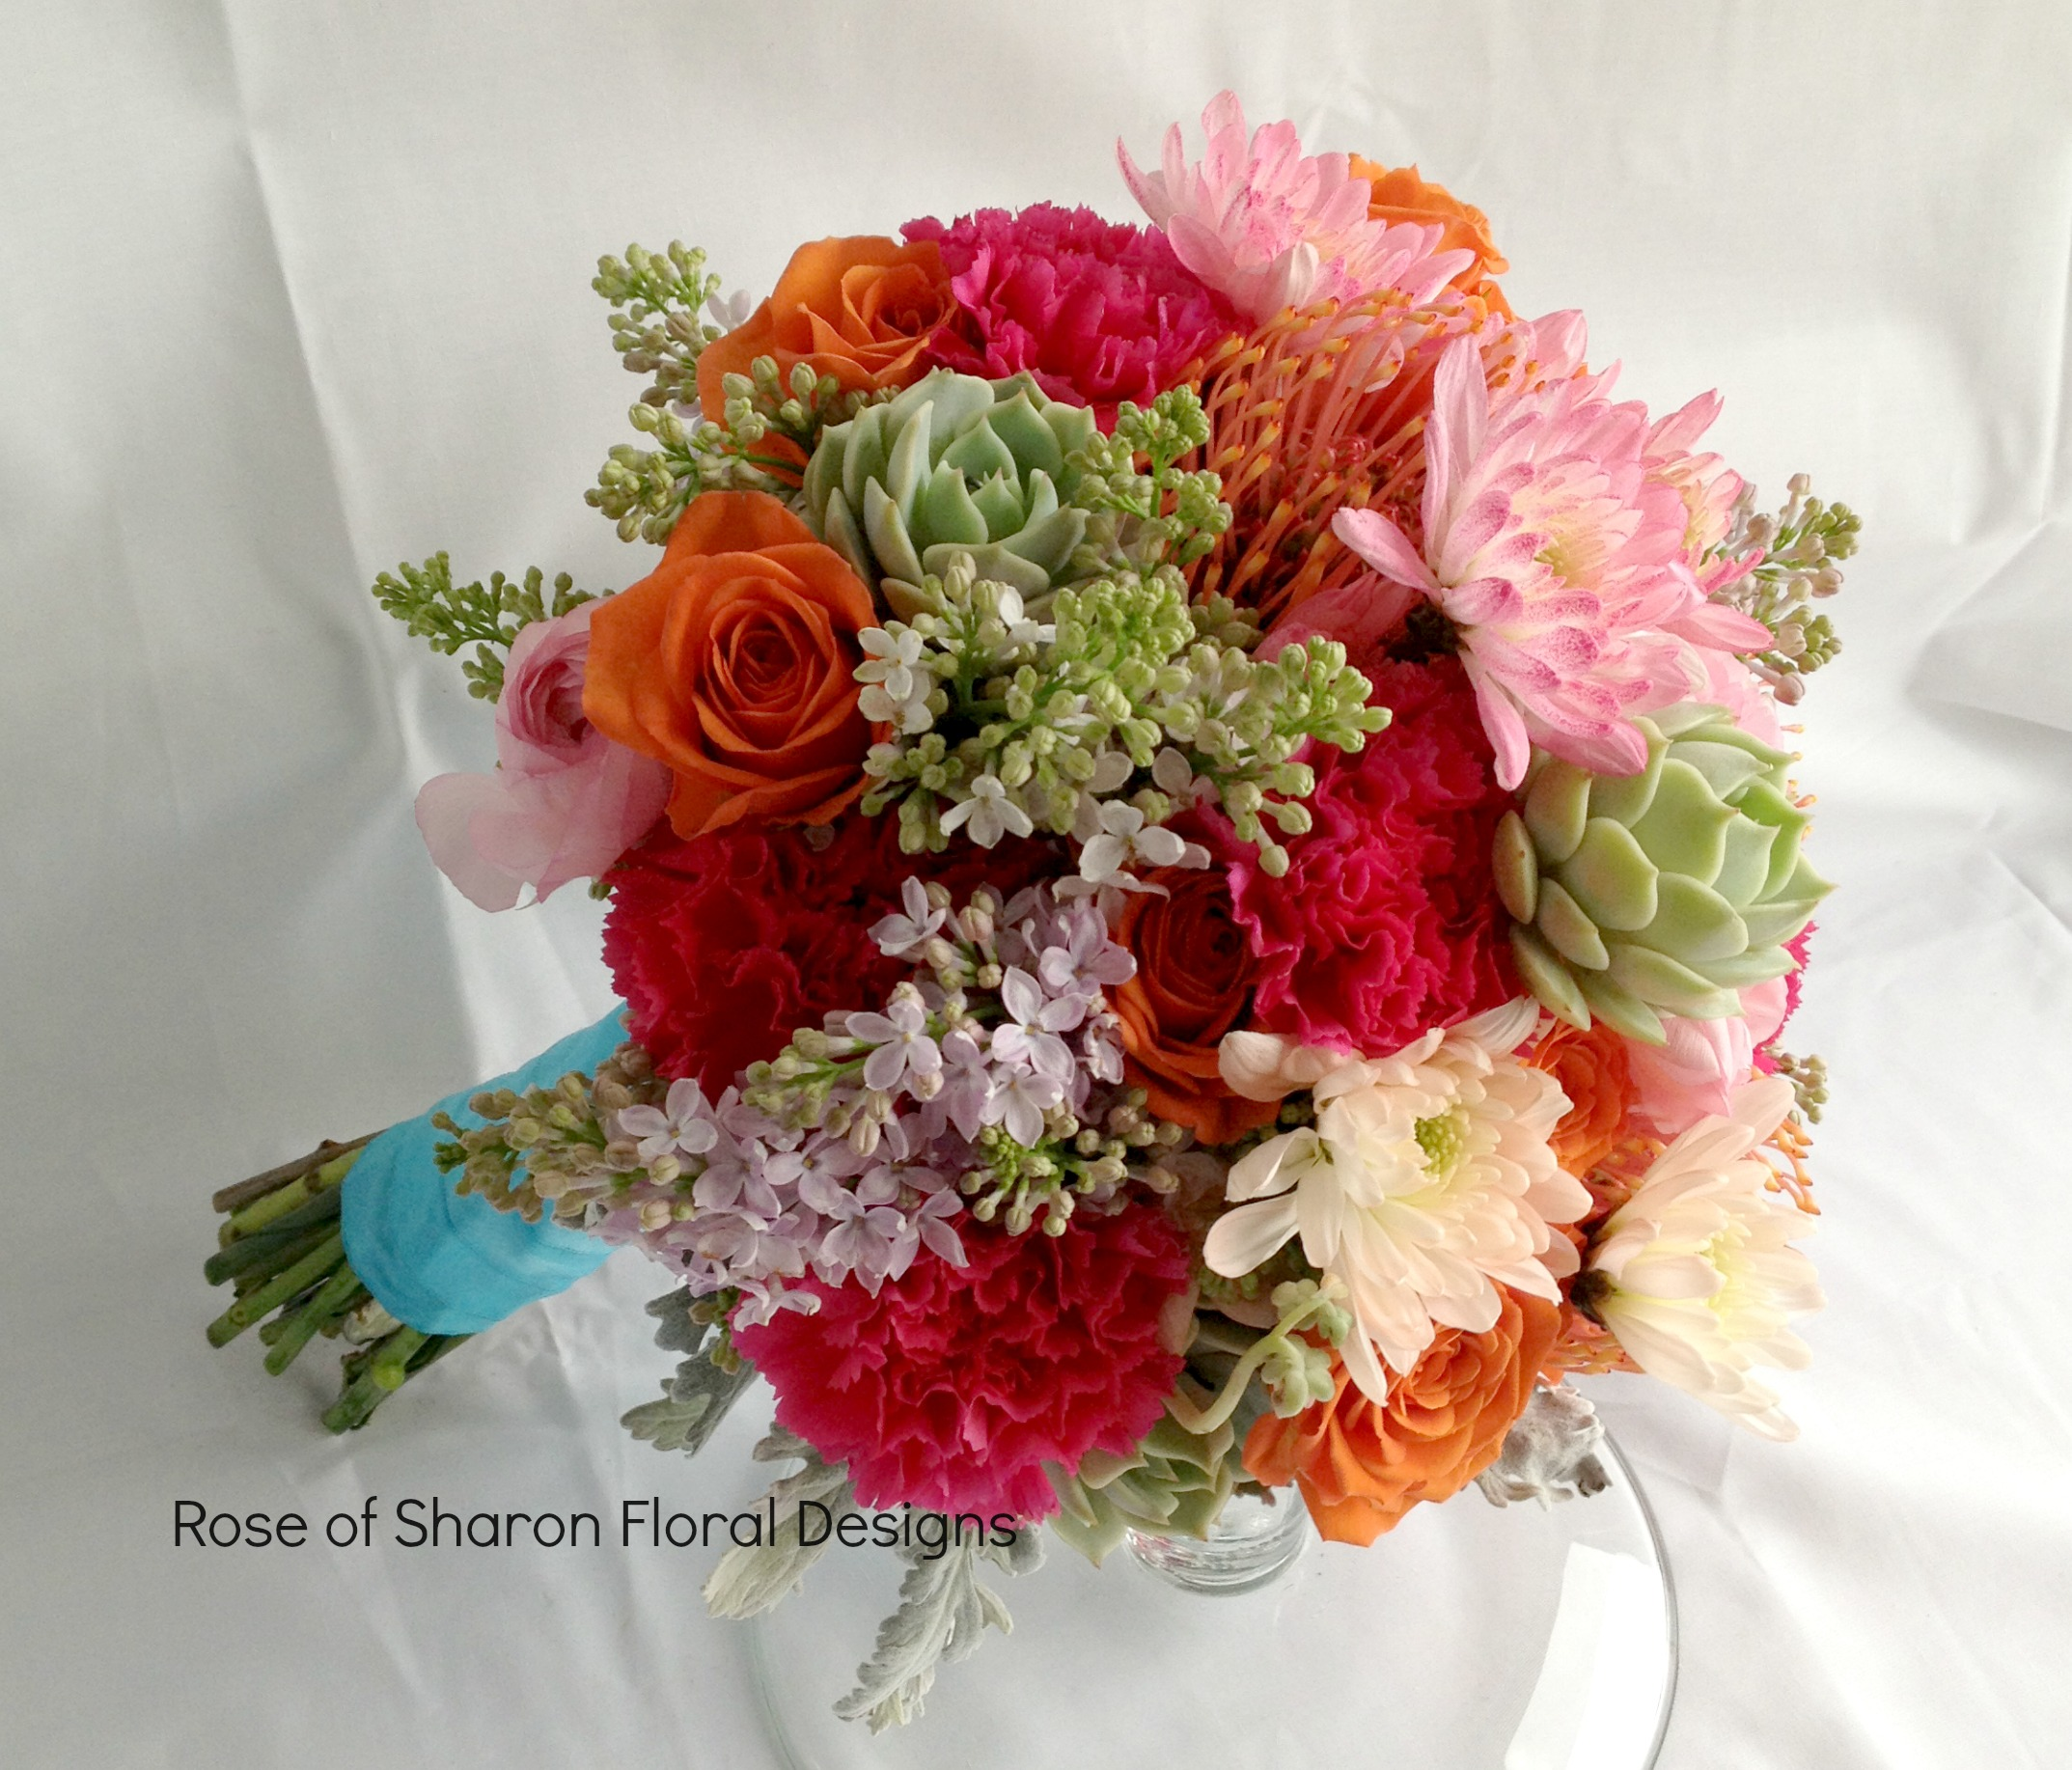 Pink and Orange Bouquet with Succulents, Rose of Sharon Floral Designs